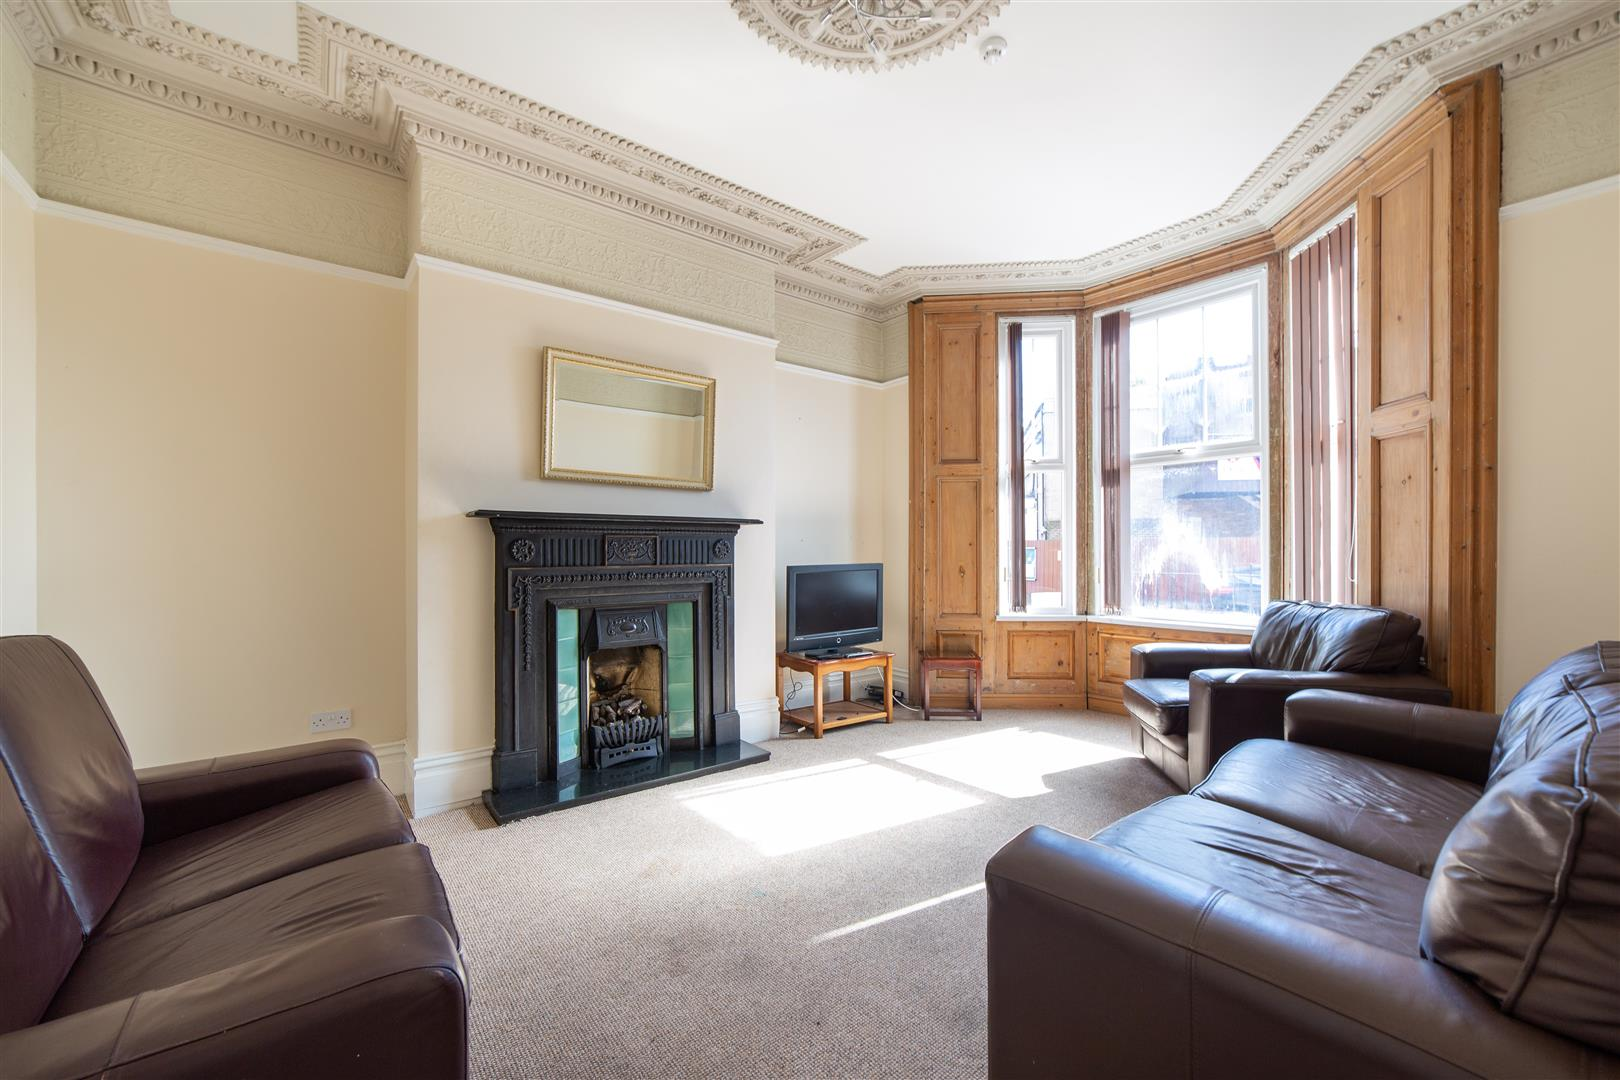 9 bed terraced house to rent in Newcastle Upon Tyne, NE2 1JS, NE2